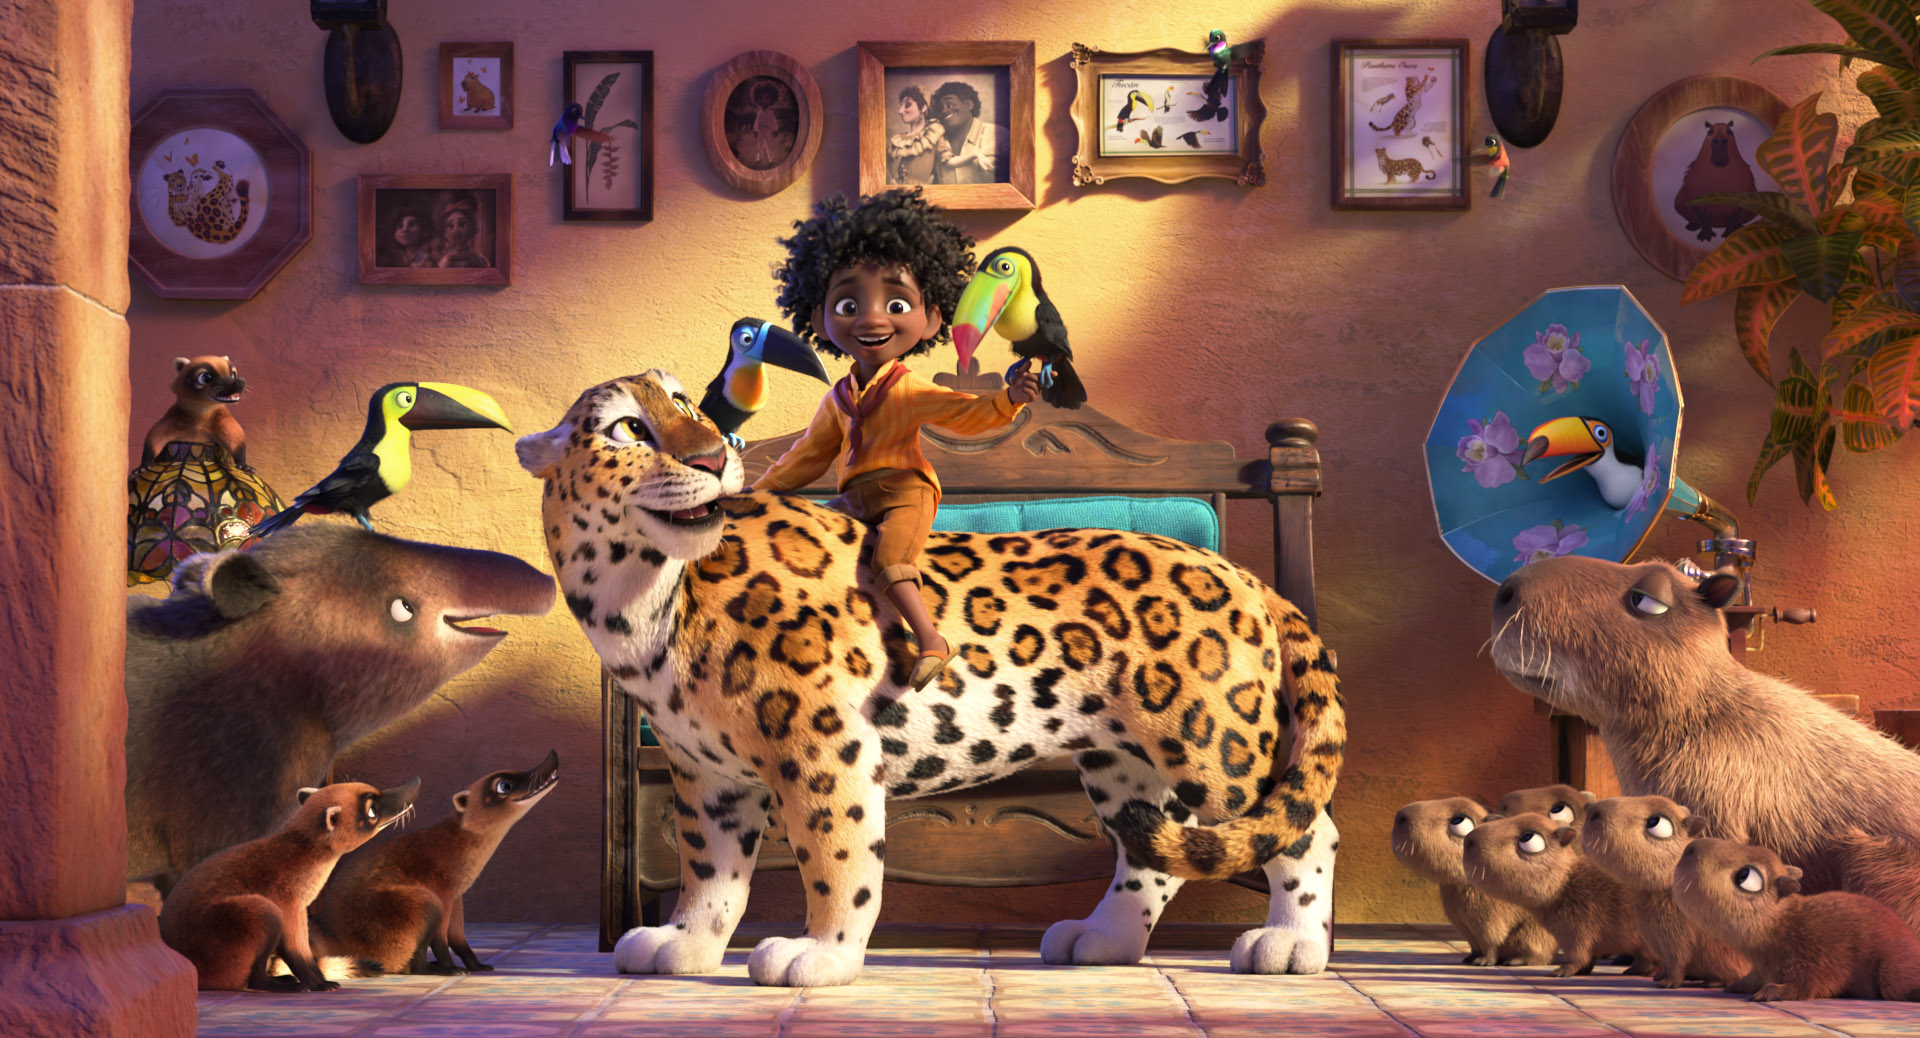 """In Walt Disney Animation Studios' """"Encanto,"""" Antonio may be shy, but his huge heart is his biggest asset—rivaled only by his newly received magical ability to communicate with animals. Directed by Byron Howard (""""Zootopia,"""" """"Tangled"""") and Jared Bush (co-director """"Zootopia""""), co-directed by Charise Castro Smith (writer """"The Death of Eva Sofia Valdez"""") and produced by Clark Spencer and Yvett Merino, """"Encanto"""" opens in theaters on Nov. 24, 2021. © 2021 Disney. All Rights Reserved."""